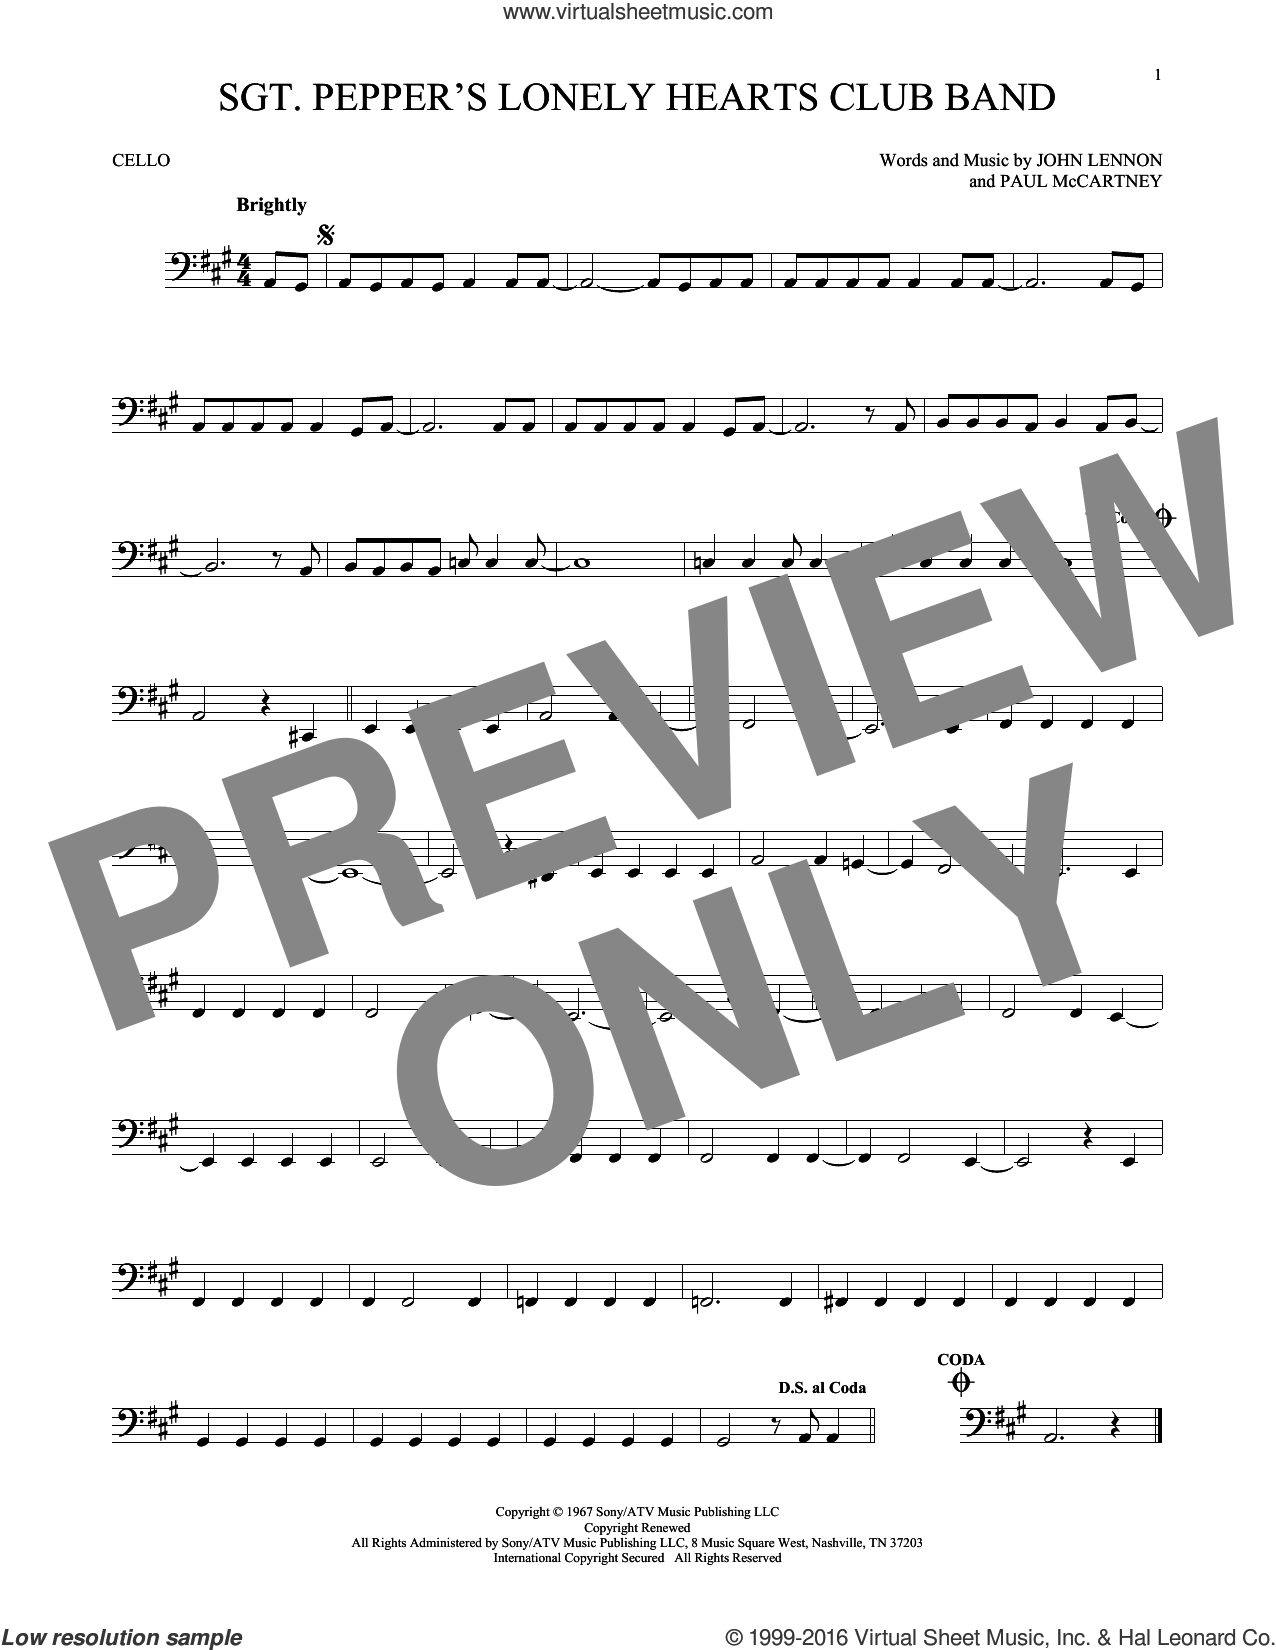 Sgt. Pepper's Lonely Hearts Club Band sheet music for cello solo by The Beatles, John Lennon and Paul McCartney, intermediate skill level